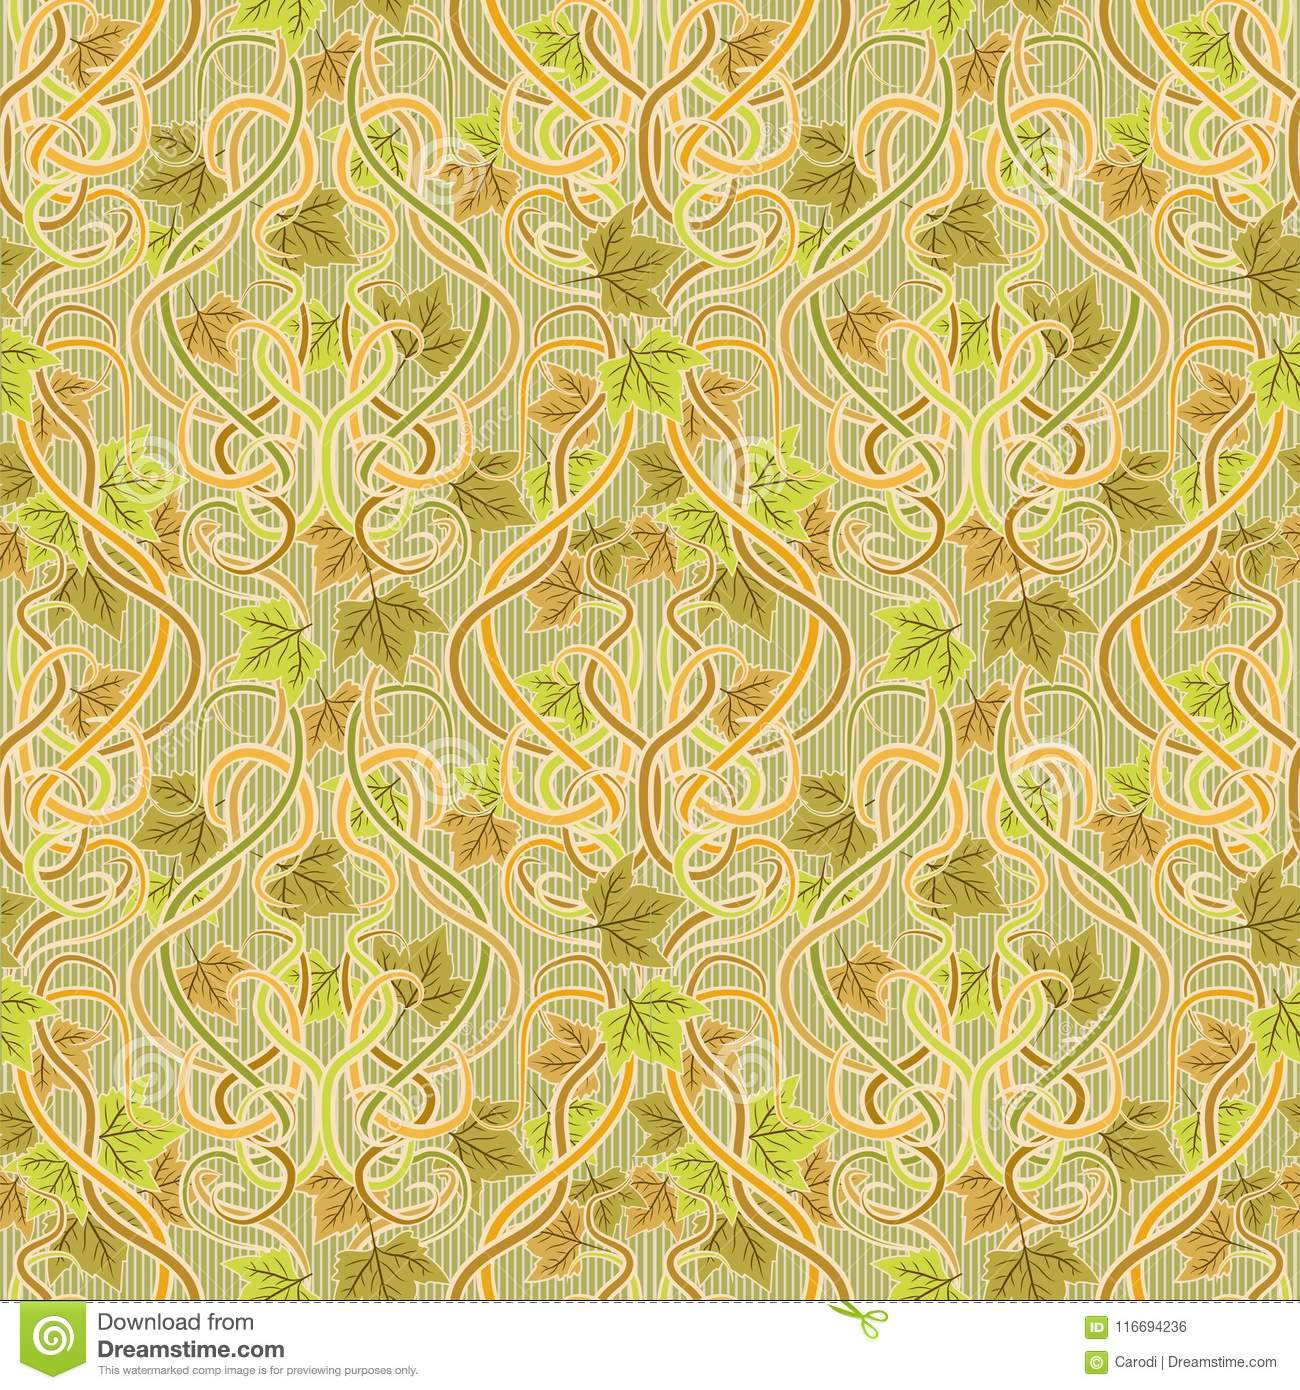 Seamless Wallpaper With Leaves In Art Nouveau Style, Vector Stock ...